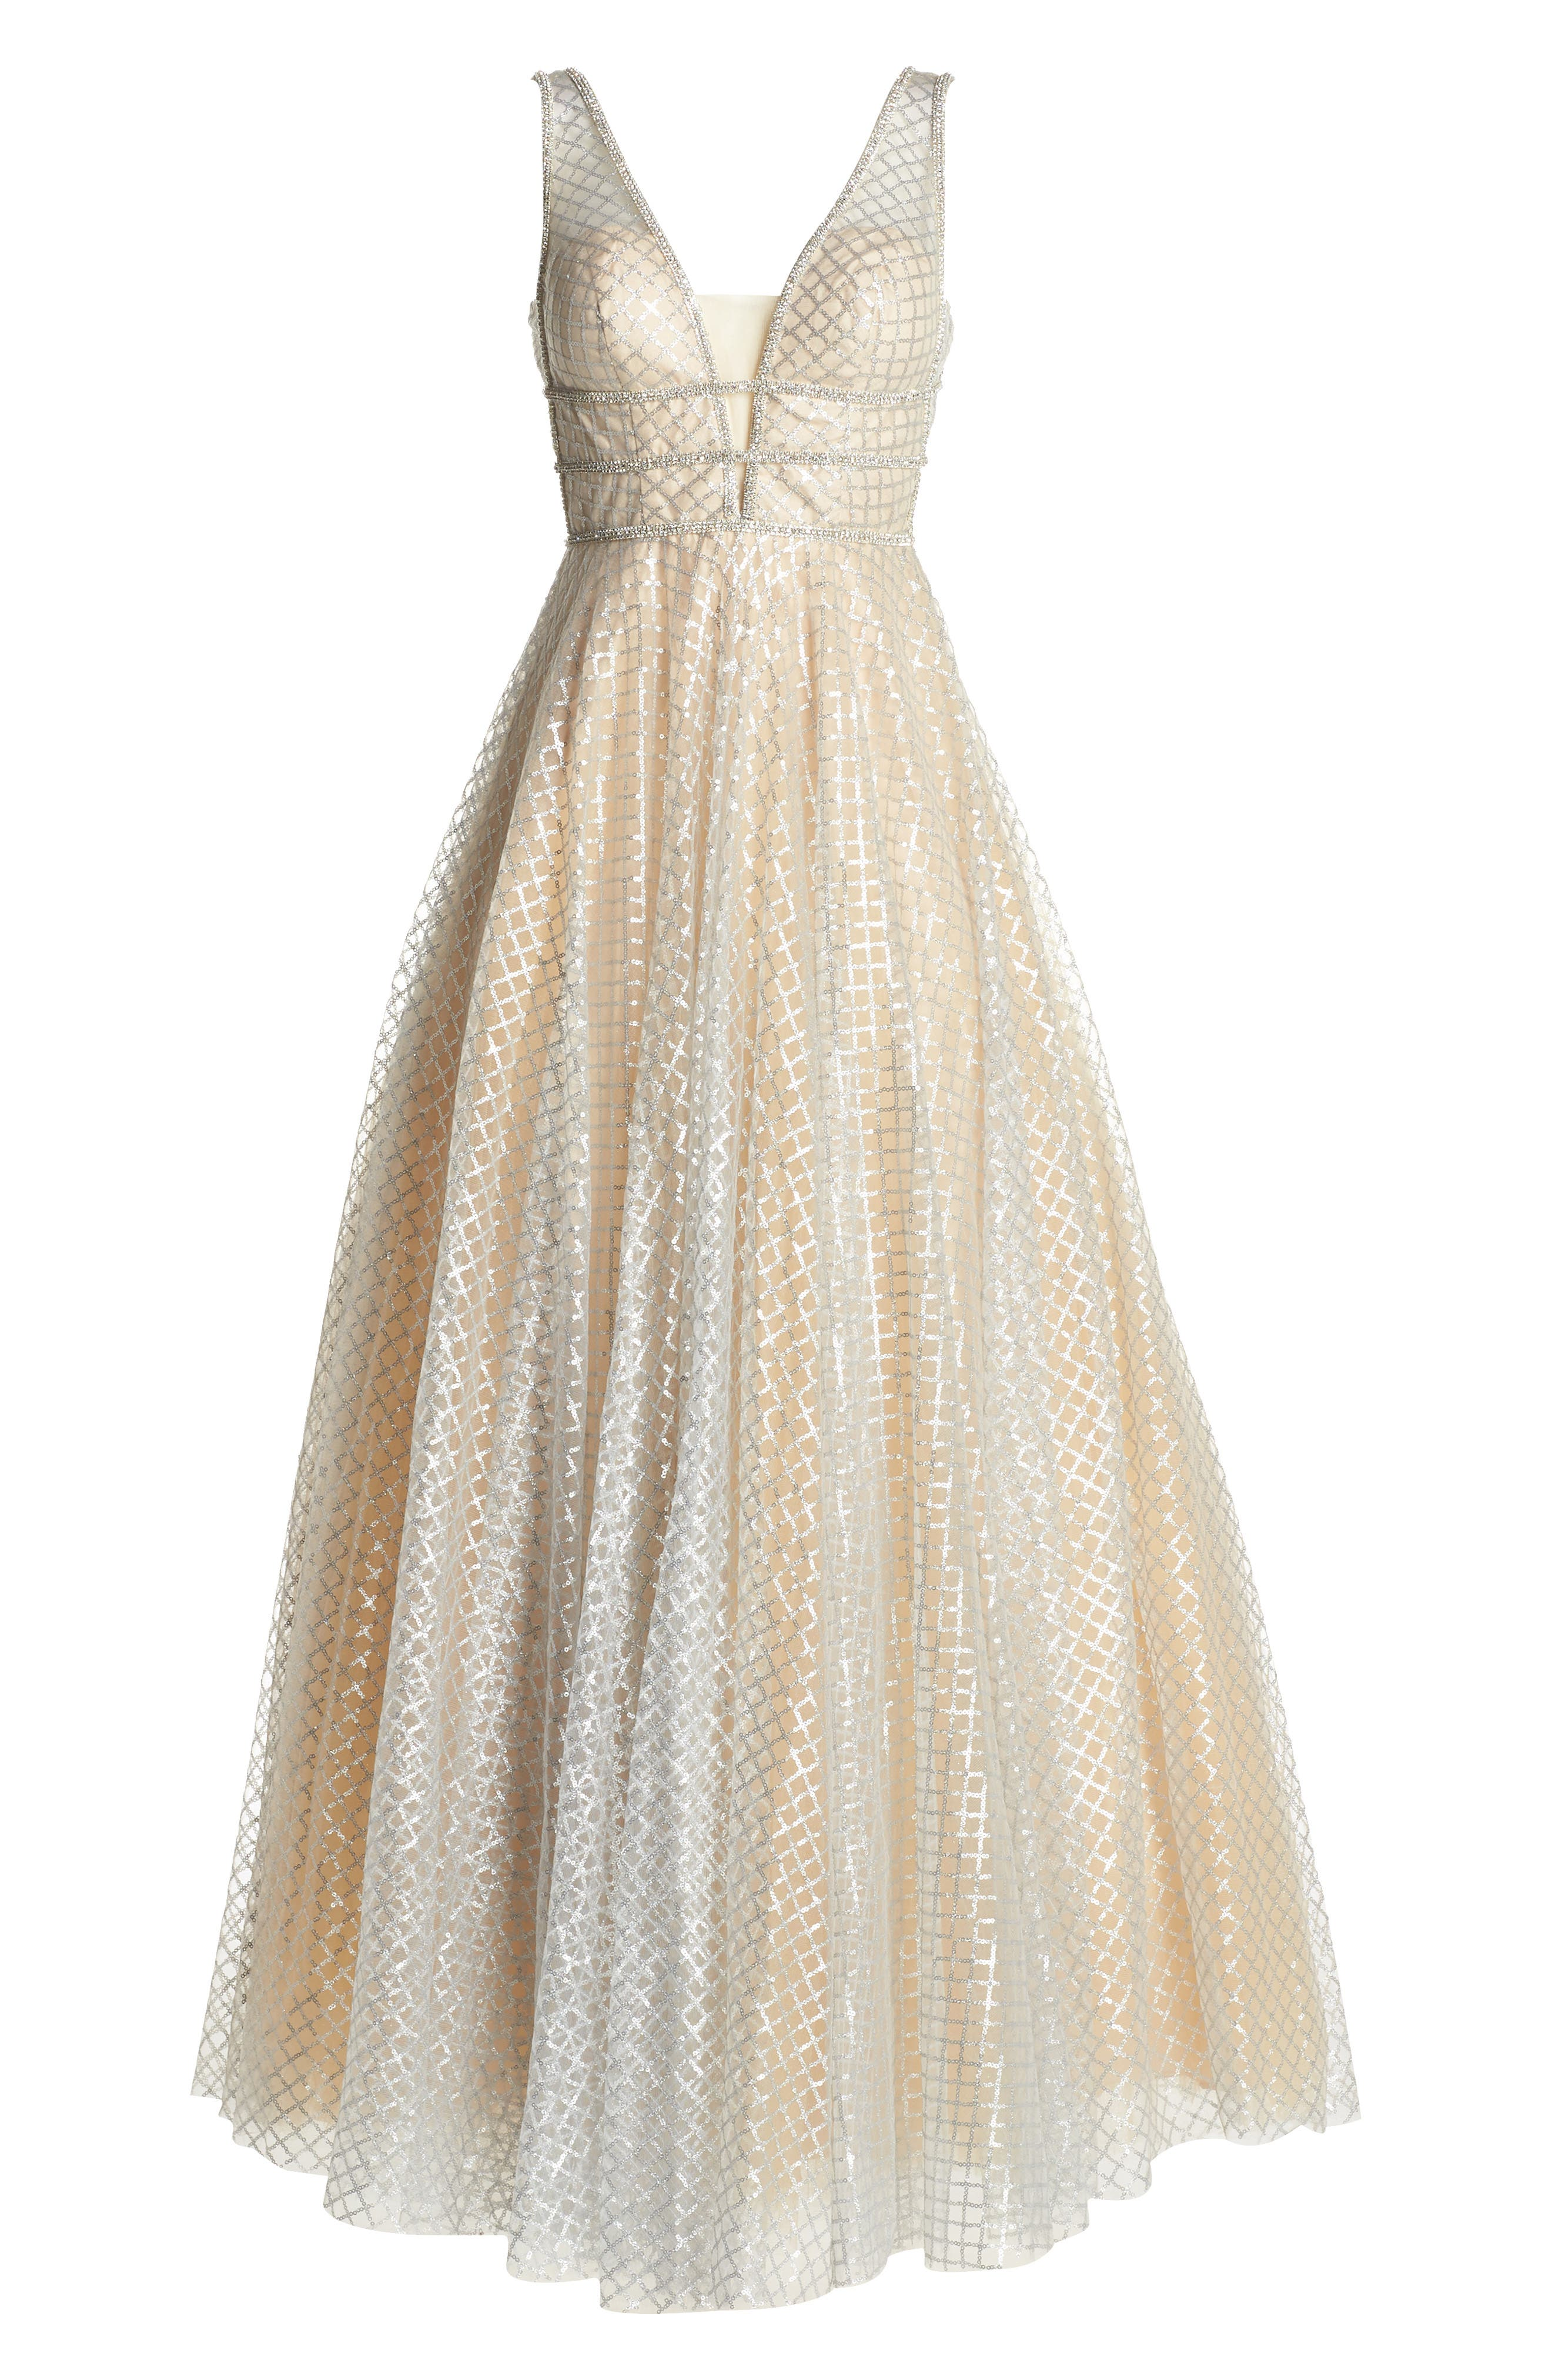 MAC DUGGAL, Sequin Illusion Neck Gown, Alternate thumbnail 7, color, NUDE/ SILVER